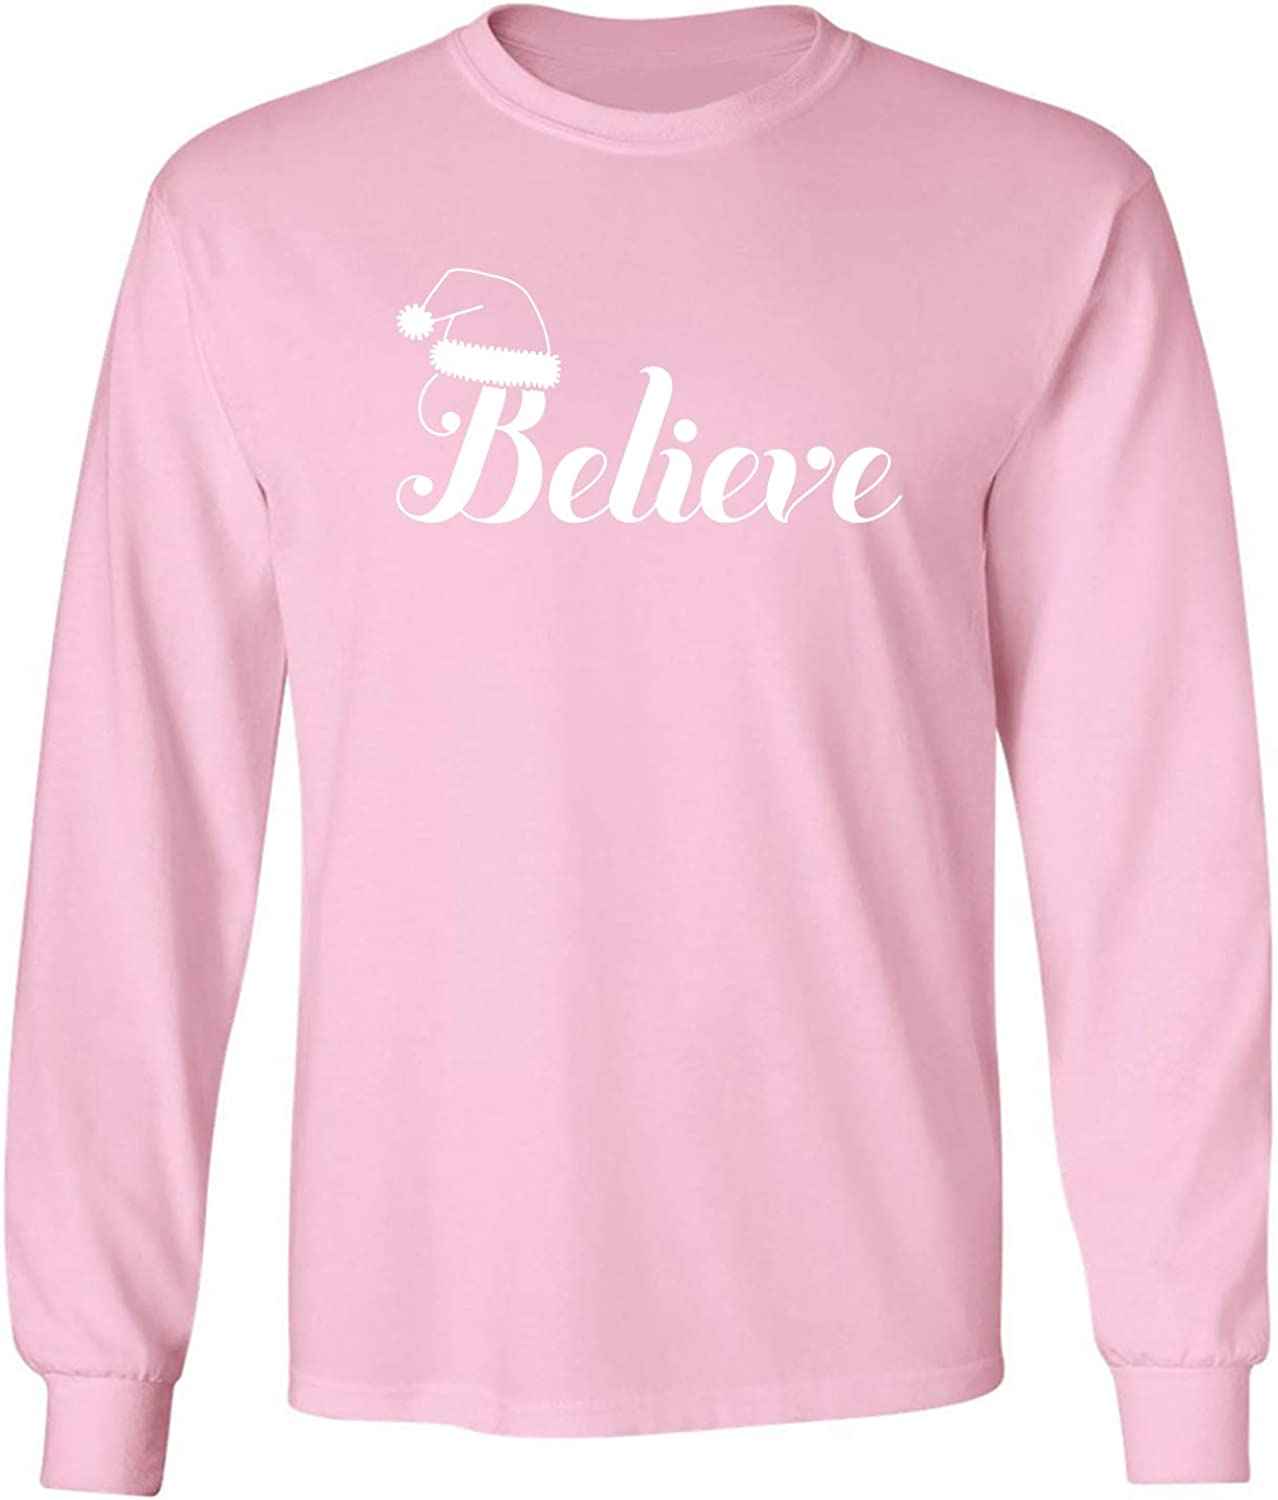 Believe Adult Long Sleeve T-Shirt in Pink - XXX-Large